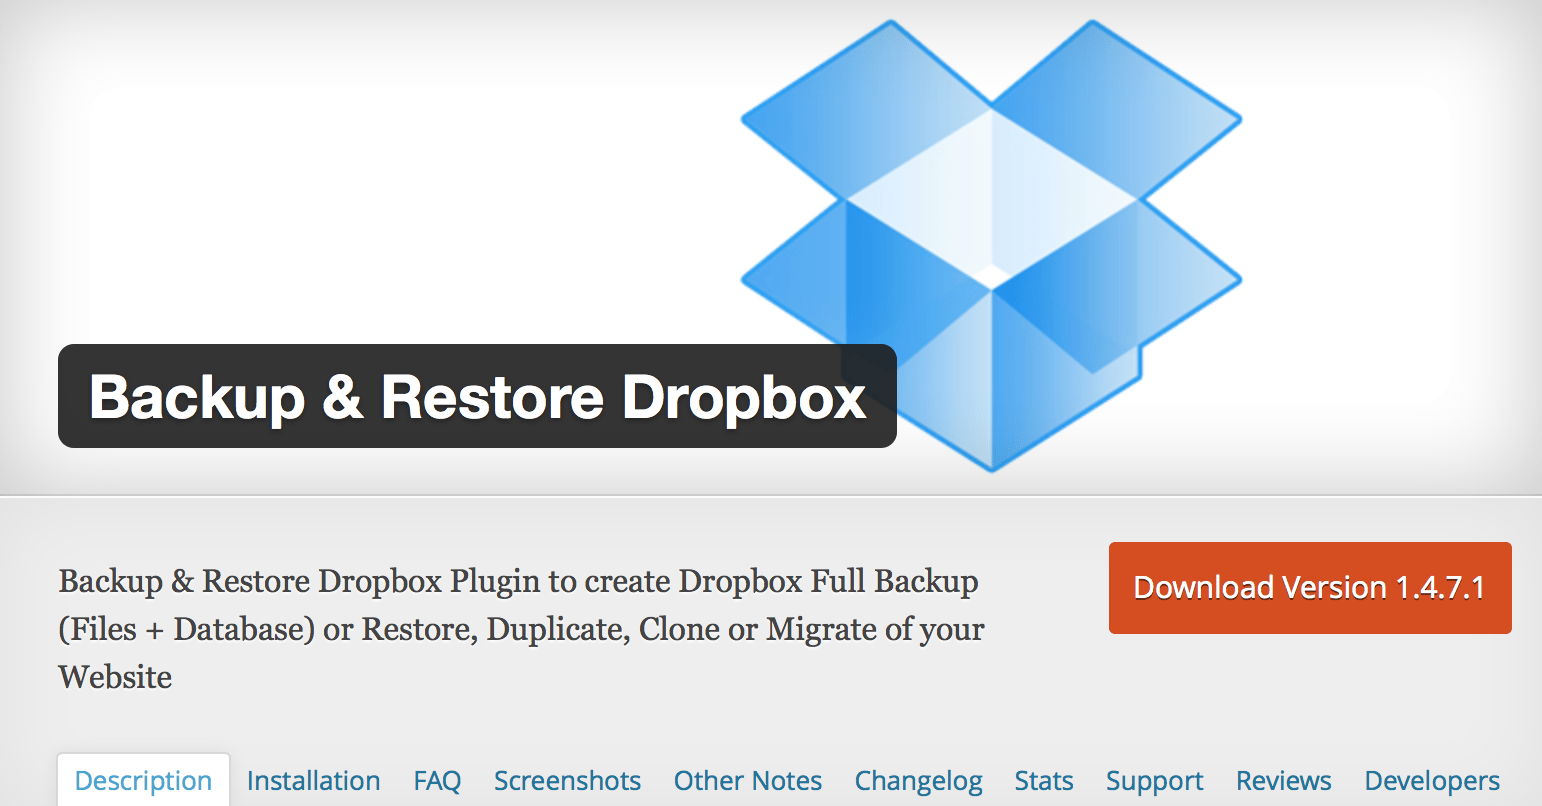 Backup___Restore_Dropbox_—_WordPress_Plugins